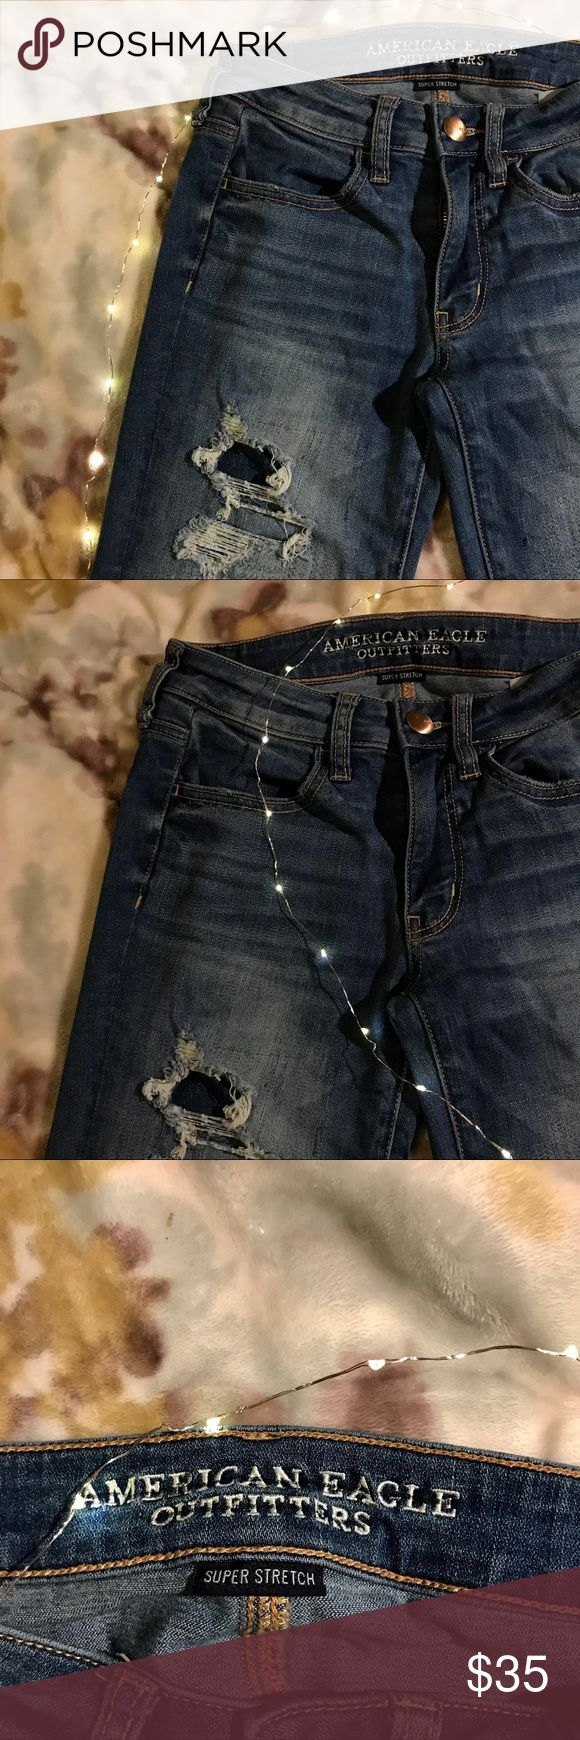 AEO Distressed Super Stretch Jeans AEO Super Stretch skinnies size 2. Excellent condition! American Eagle Outfitters Jeans Skinny